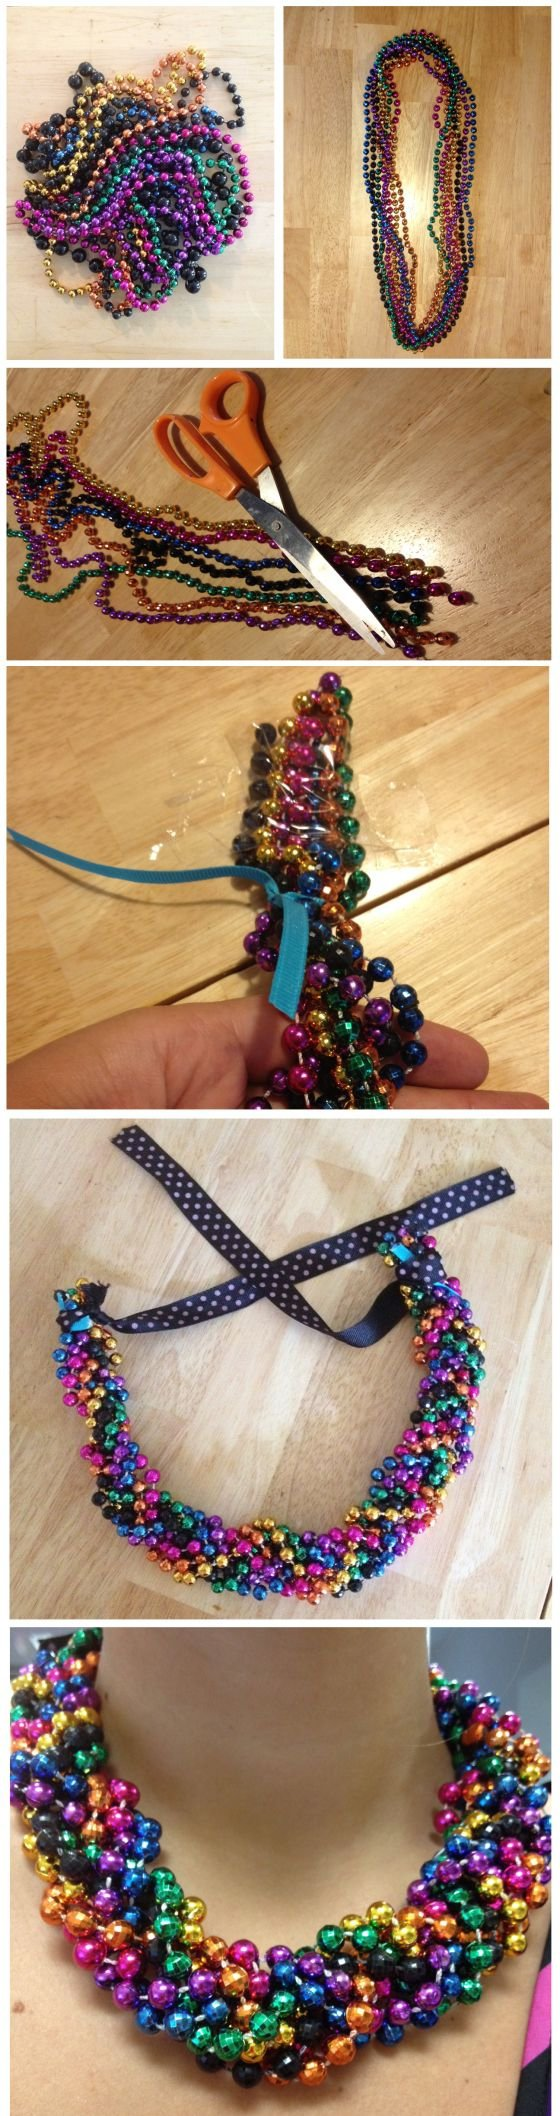 Braided Mardi Gras Bead Statement Necklace